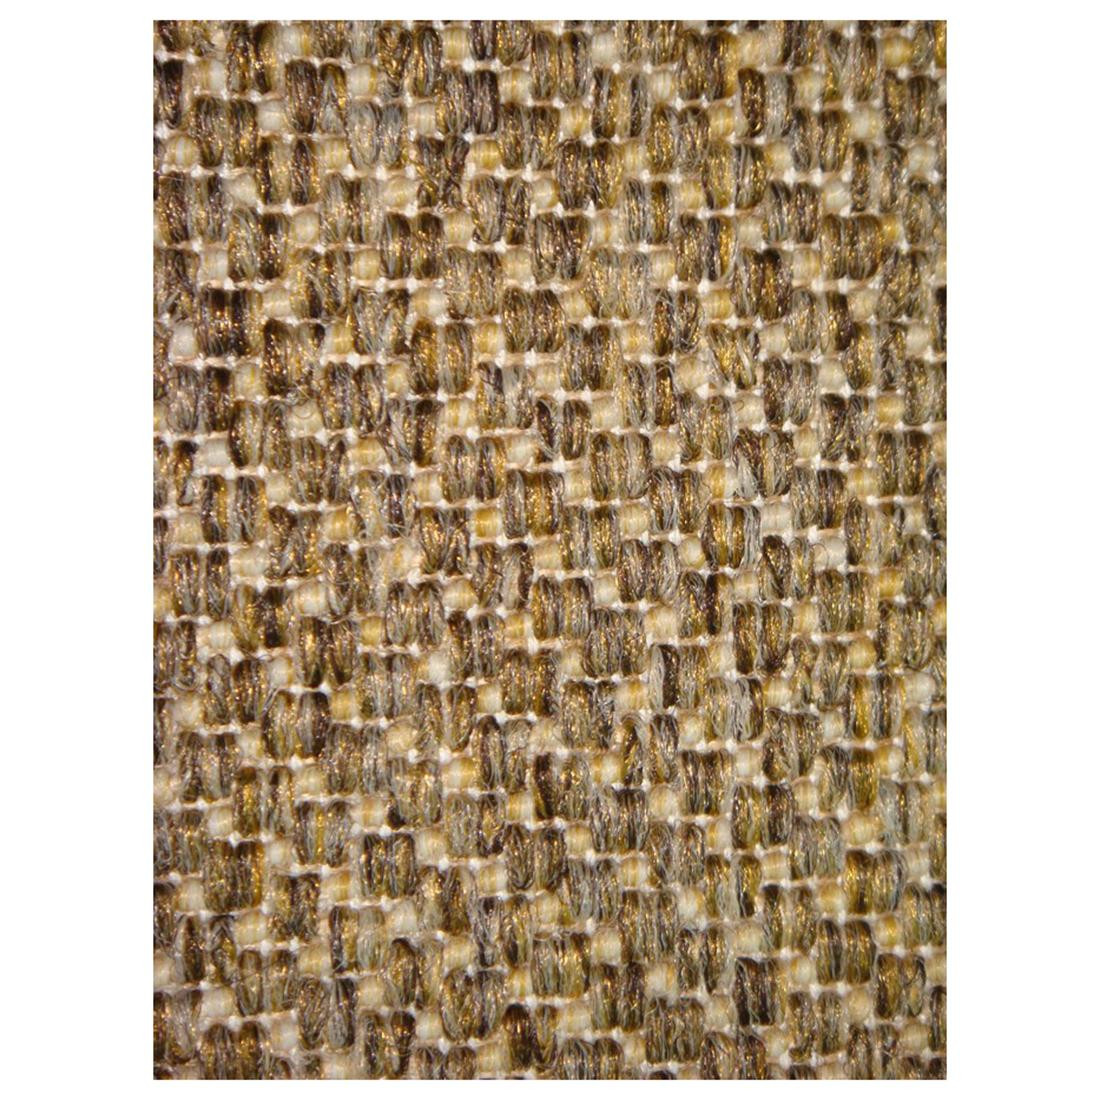 TAPETE NEW BOUCLE 6MM - 2,00x2,50